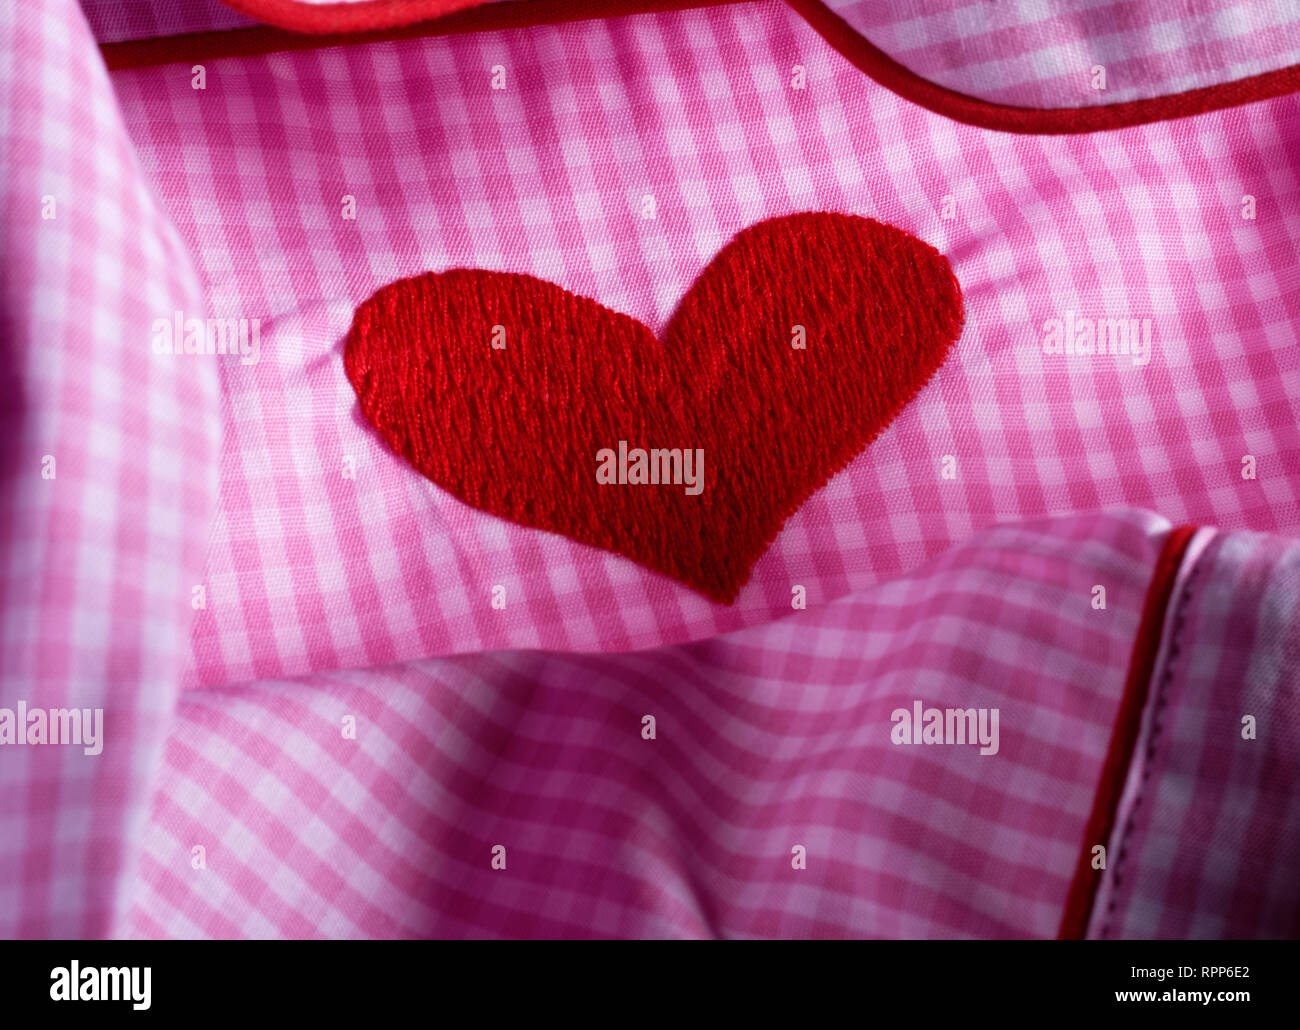 Pink and white checked gingham fabric with red heart. Cotton nightwear. Stock Photo